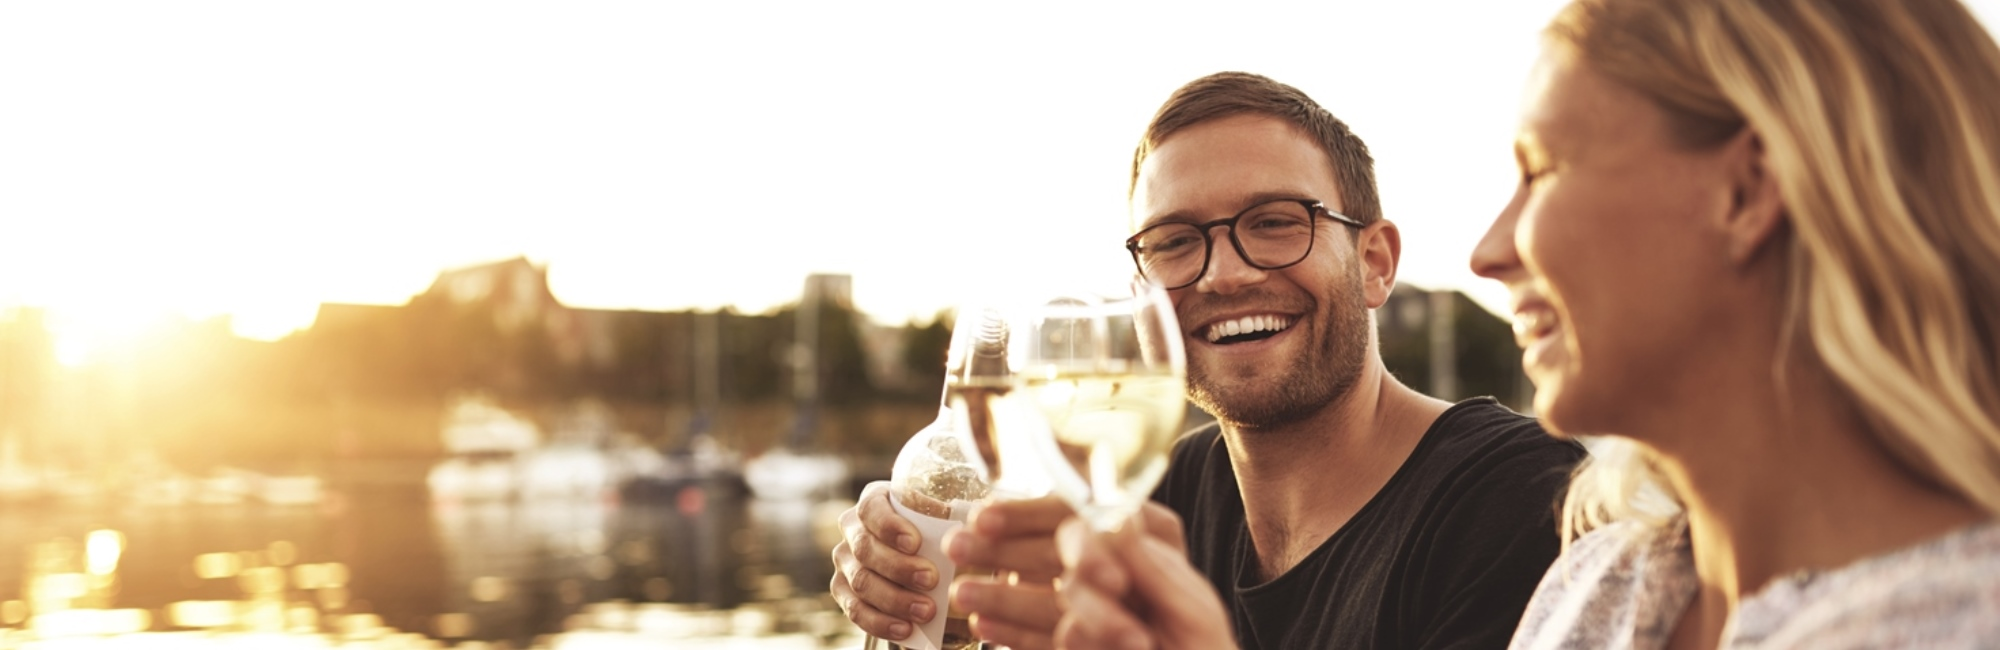 almere-haven-festival-city-marketing